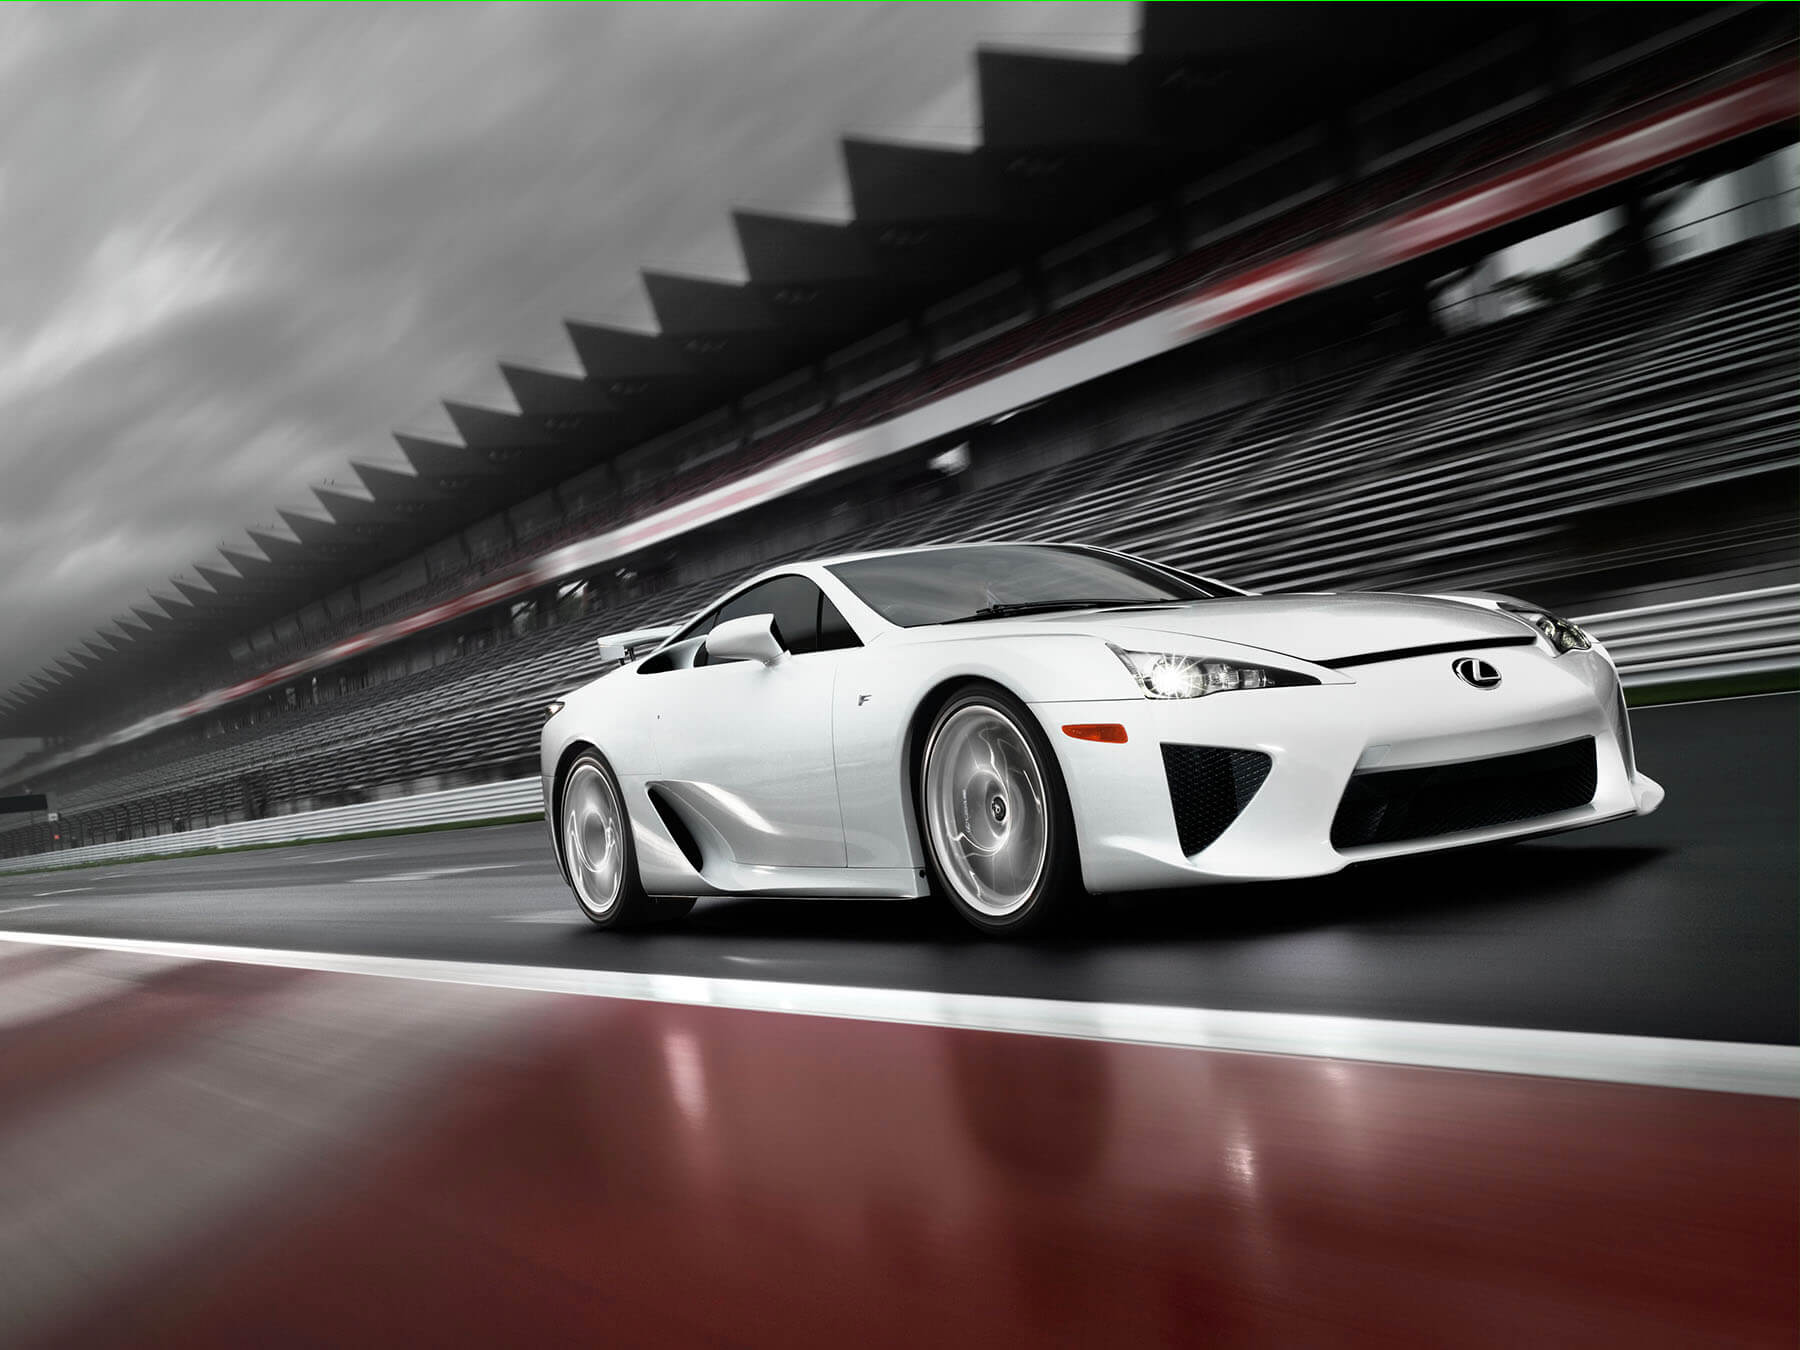 White Lexus LFA driving on a track